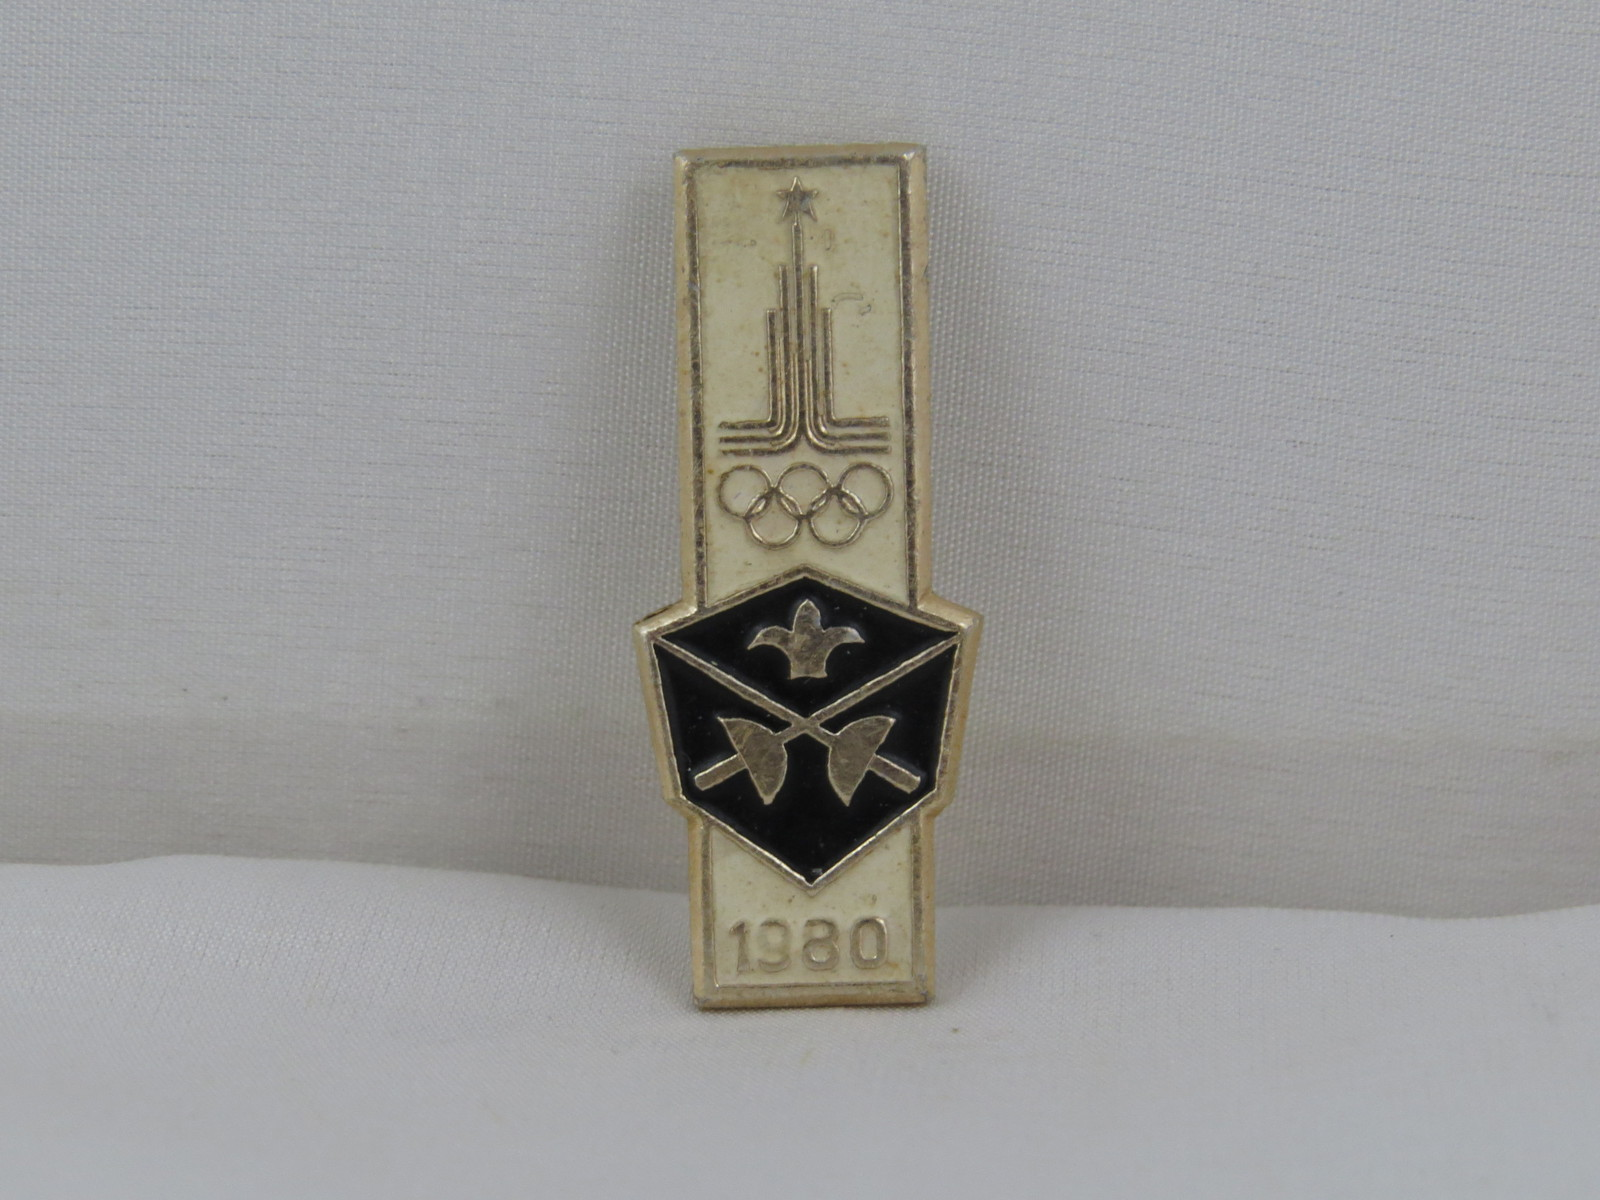 Primary image for 1980 Summer Olympic Games Pin - Fencing Event - Metal Pin